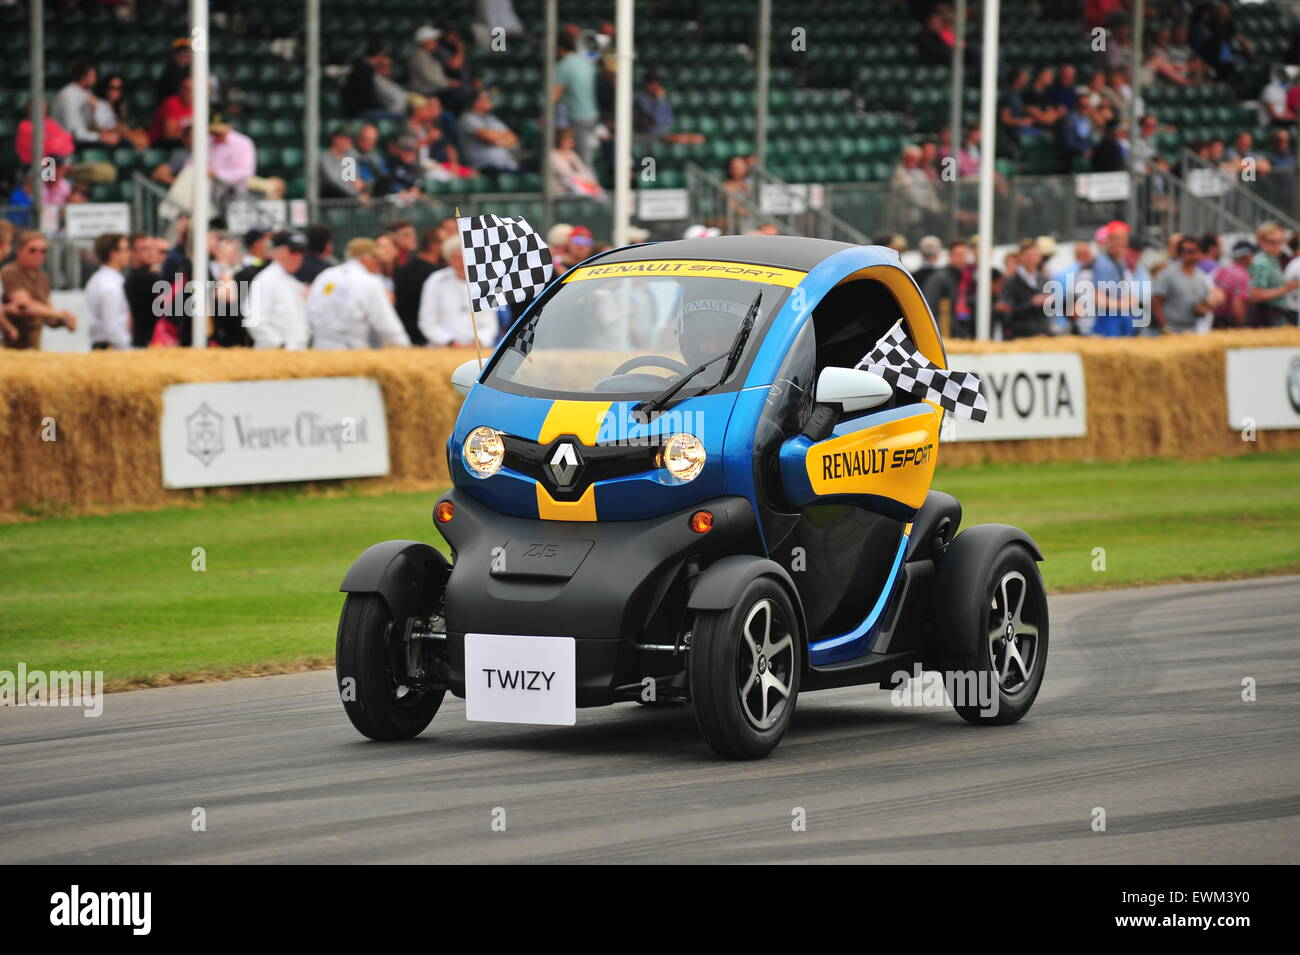 Goodwood, West Sussex, UK. Sunday 28 June 2015 The final day of action at the Goodwood Festival of Speed. Racing Stock Photo